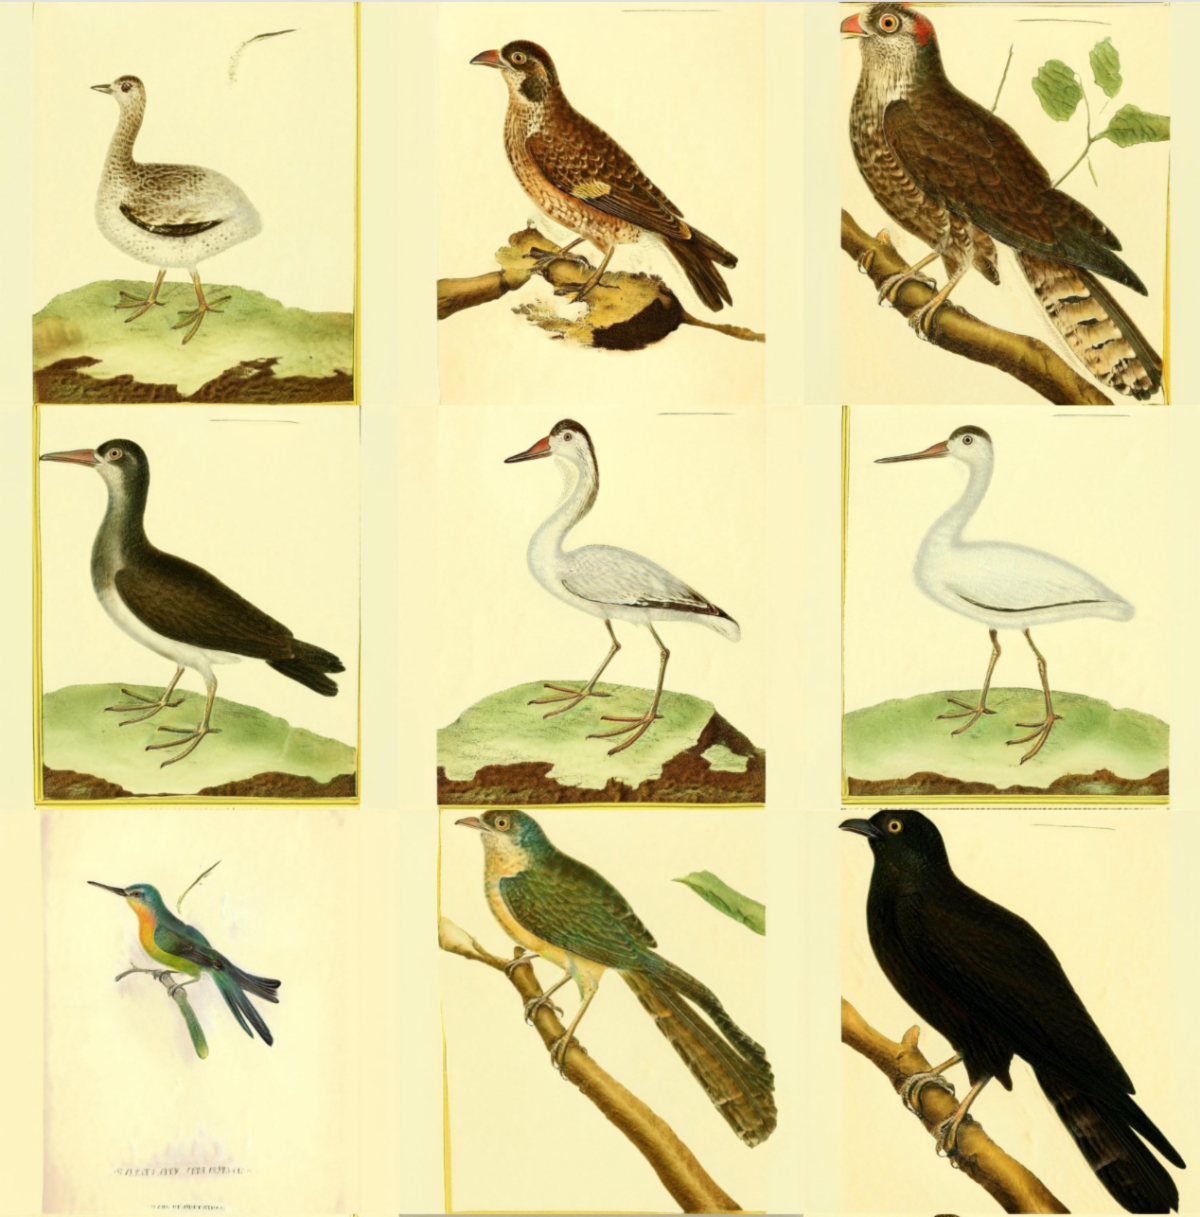 A set of nine images on a grid. Each looks like a scientific illustration of a different bird.